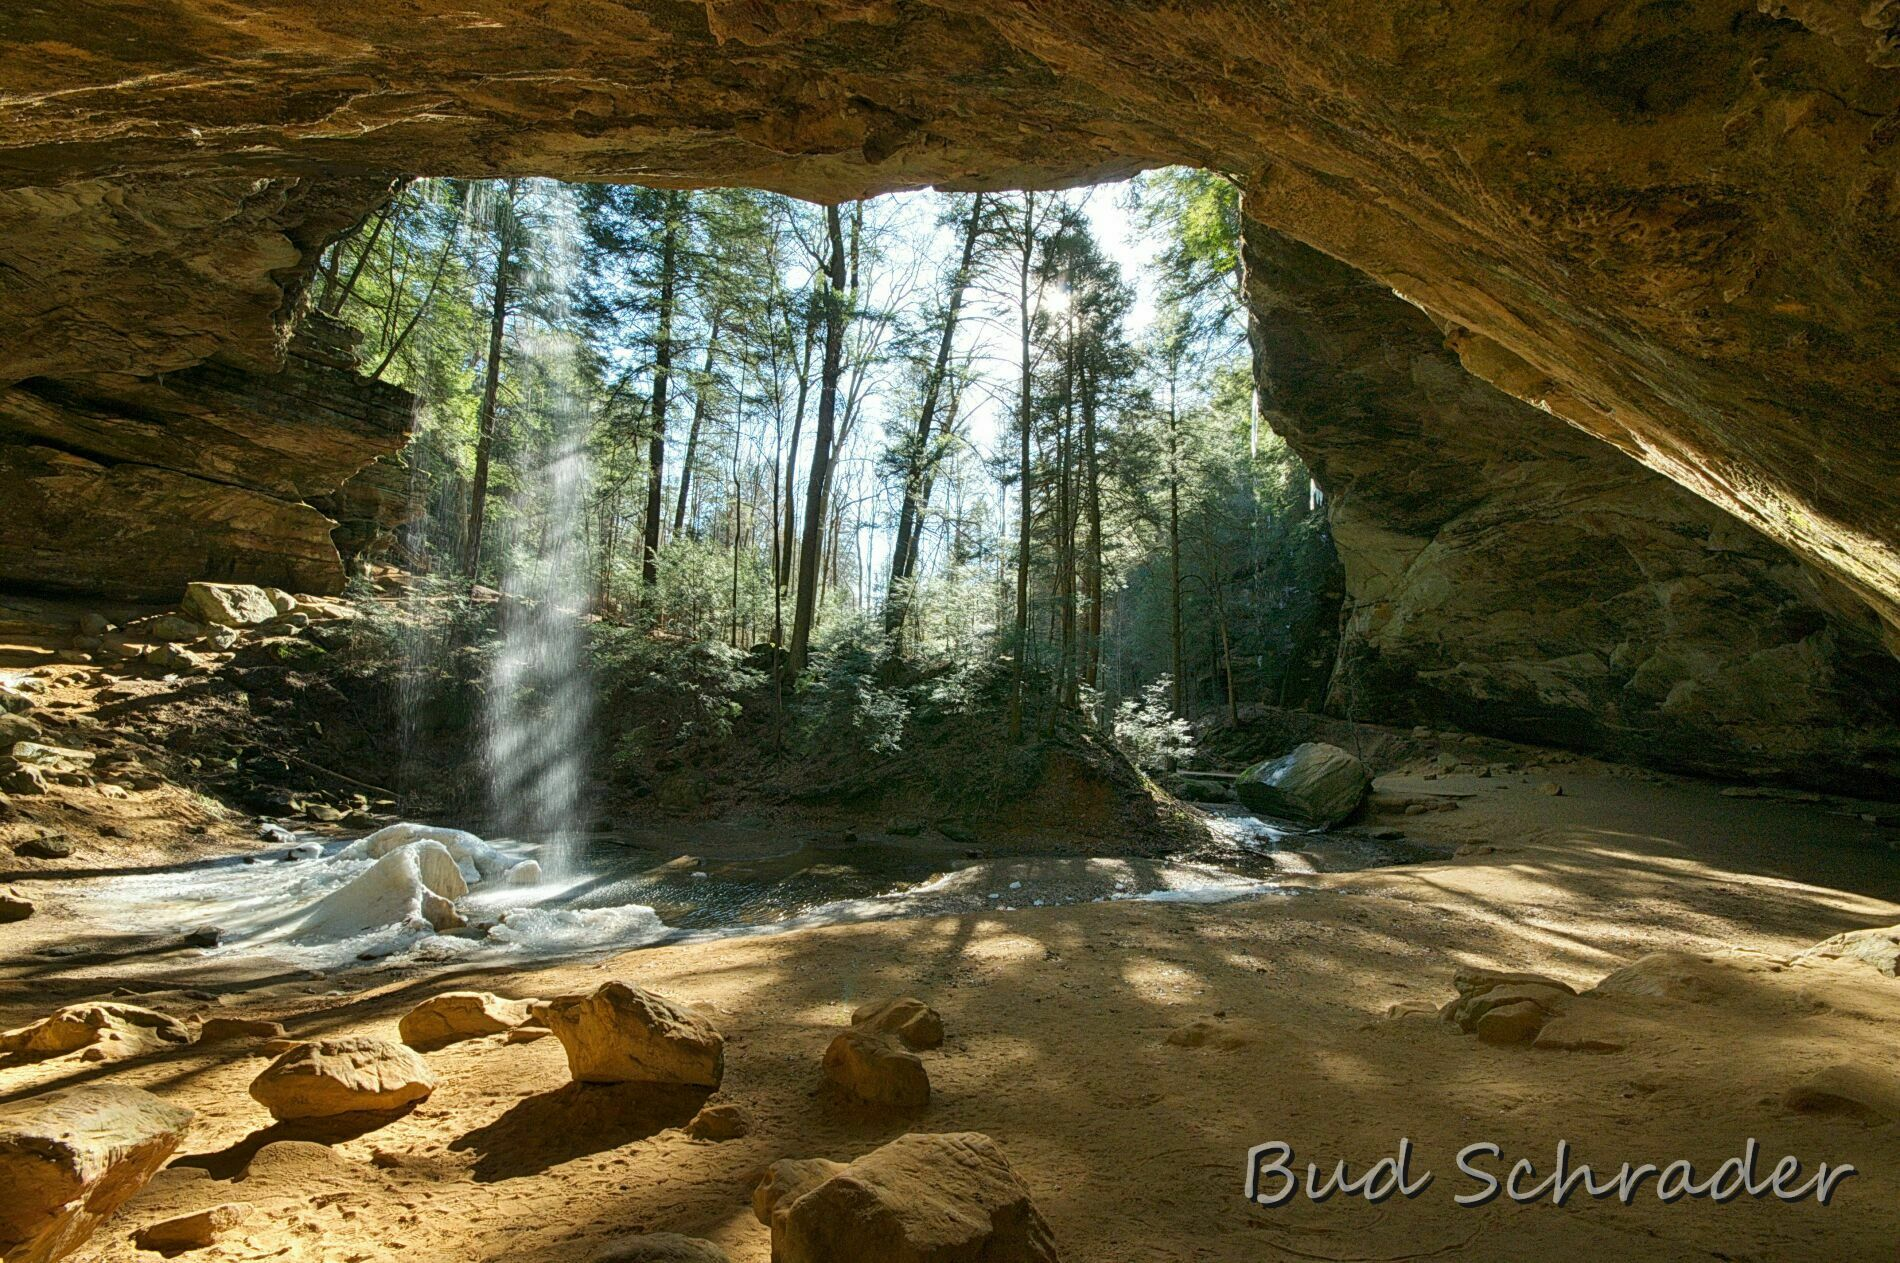 photo from inside of cave looking at curve of cave walls and sunlight streaming in